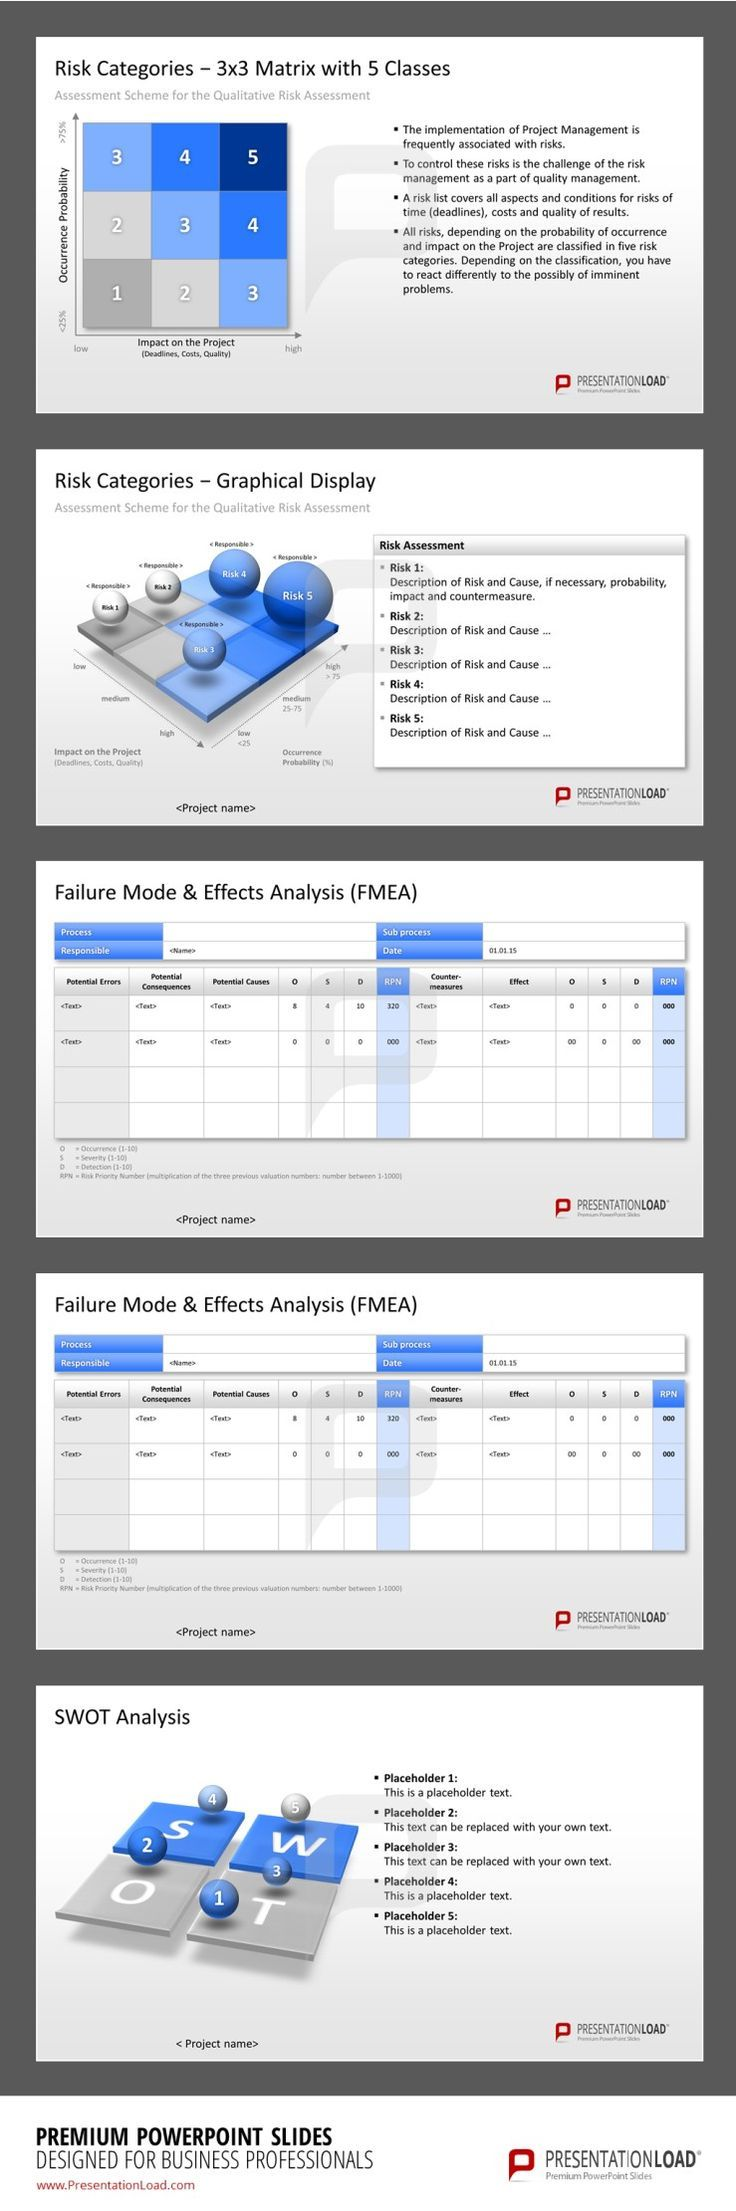 Project Management PowerPoint Templates for evaluating risks, minimizing failures and maximizing the opportunities.… http://itz-my.com